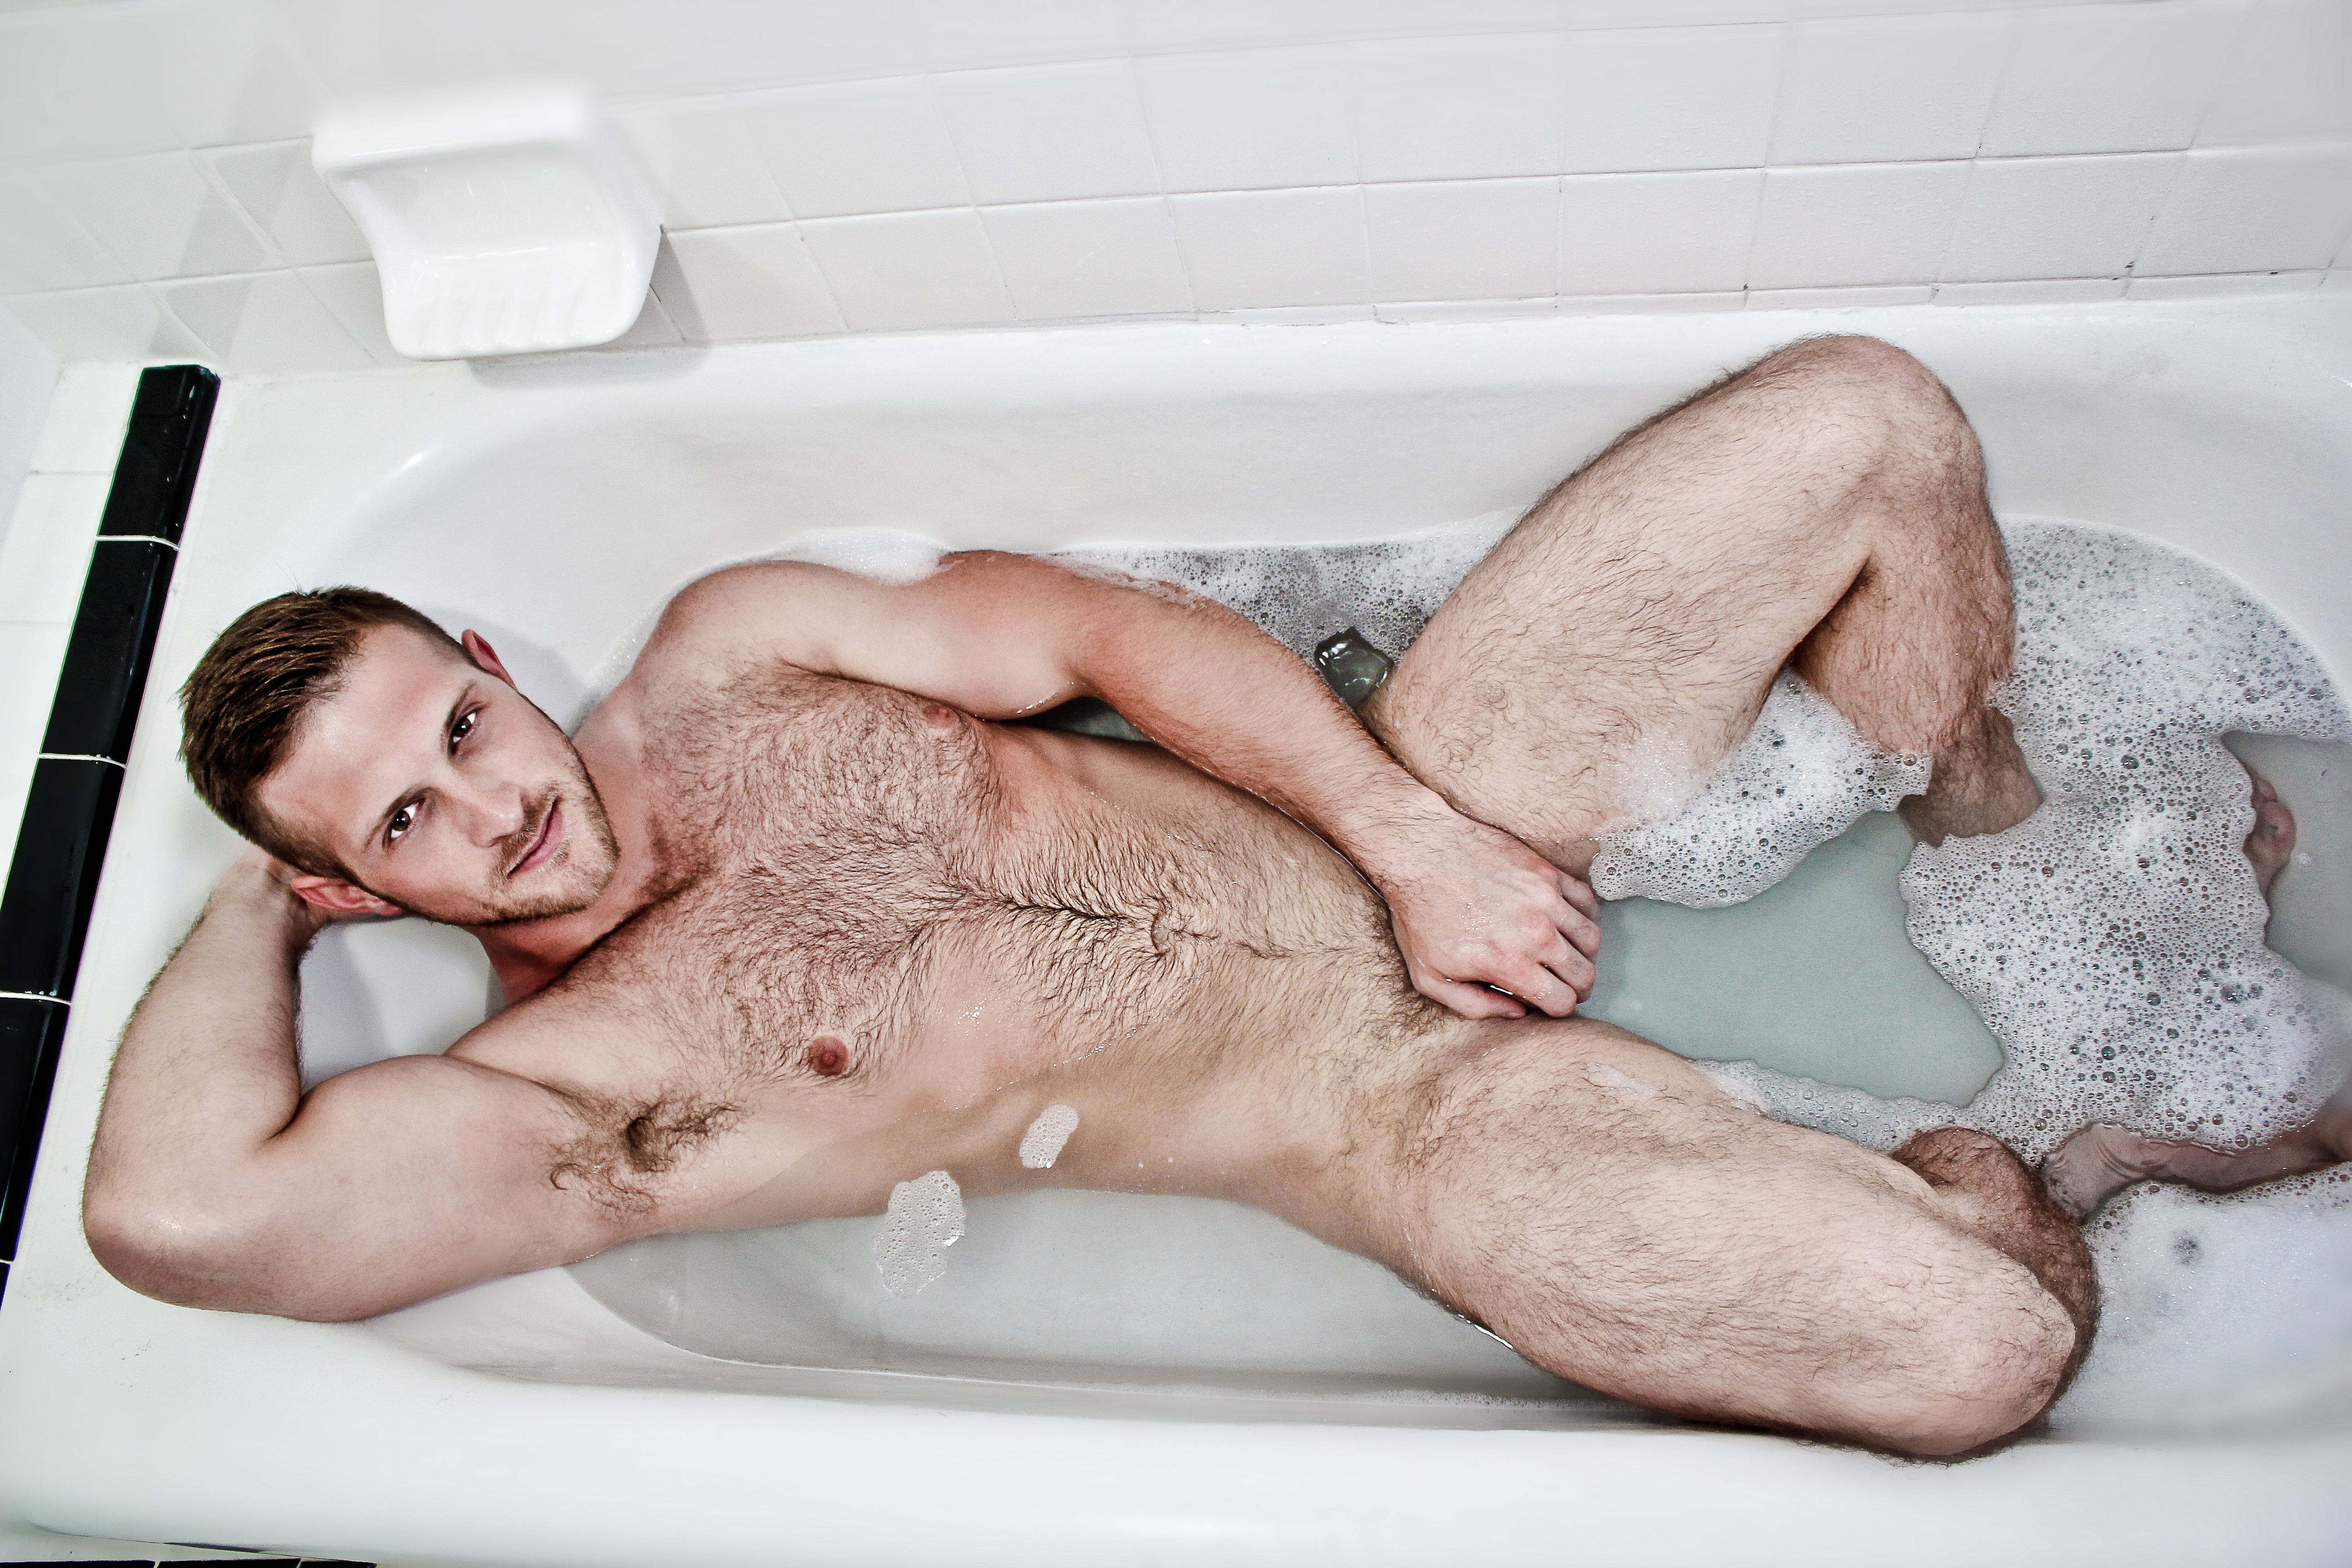 Duly answer Naked laying in the bath self picture opinion you